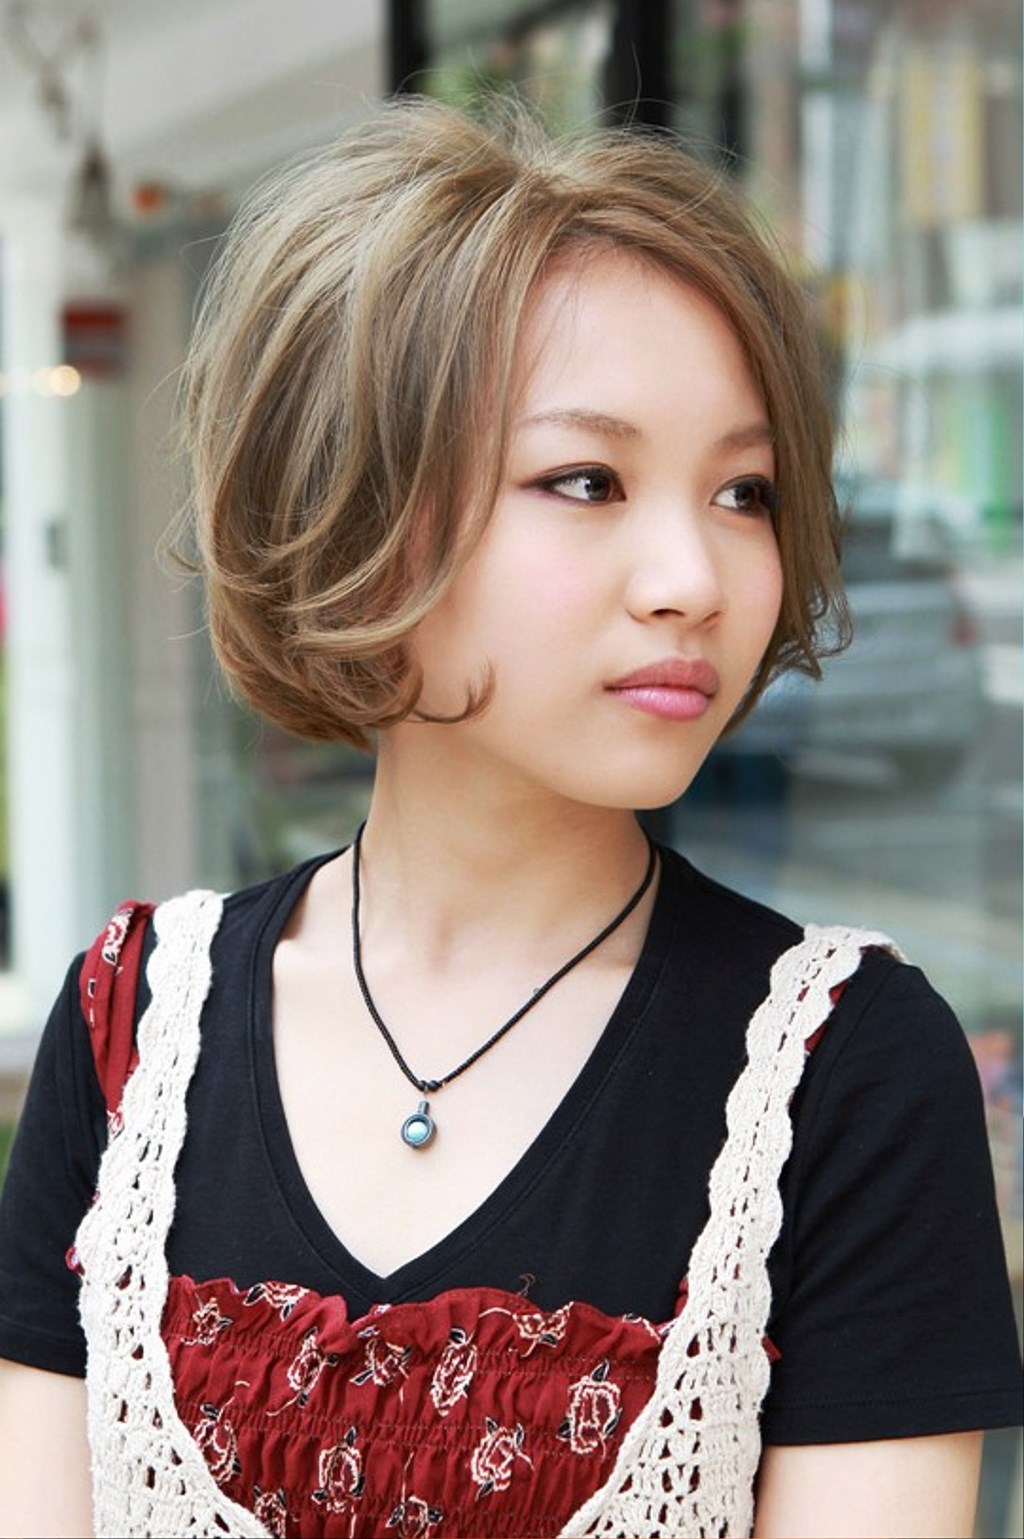 Remarkable Pictures Of Japanese Curly Bob Hairstyles 2013 Short Hairstyles For Black Women Fulllsitofus